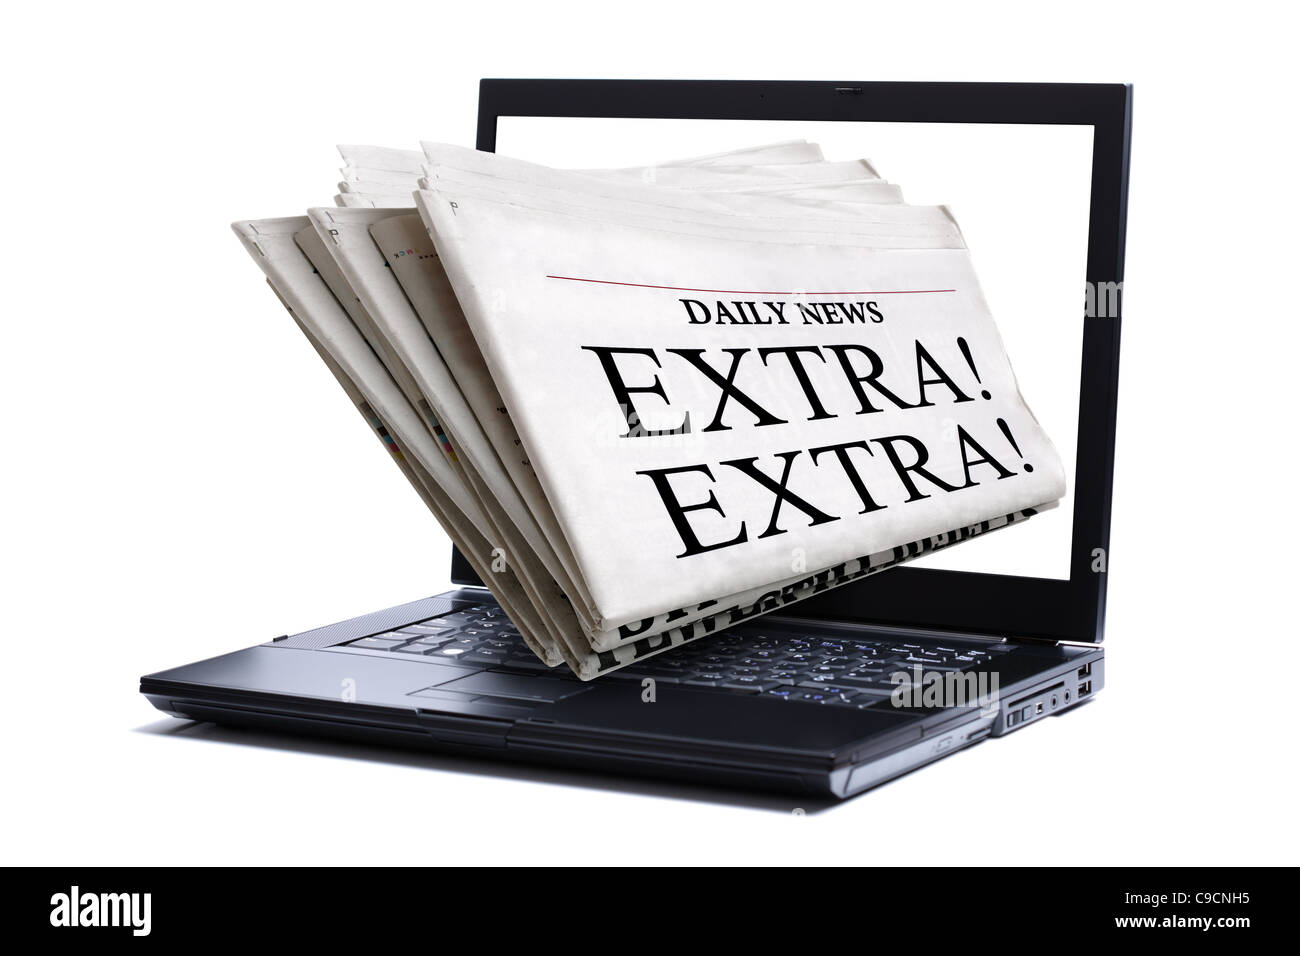 Internet news - Stock Image